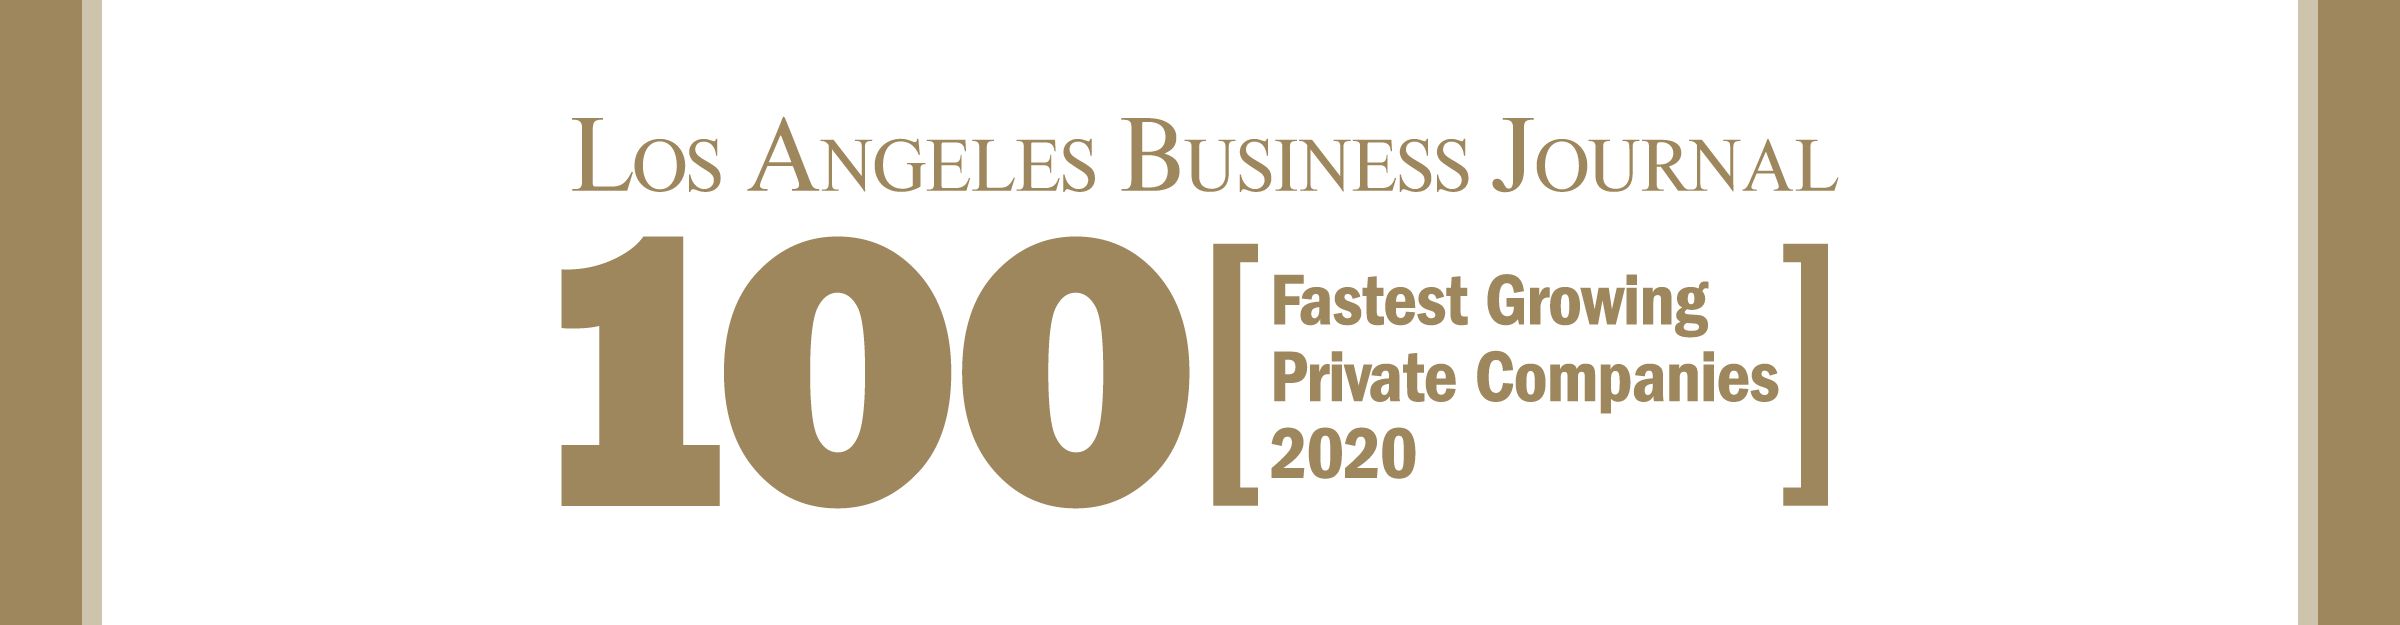 Los Angeles Business Journal 100 Fastest Growing Private Companies Event Banner